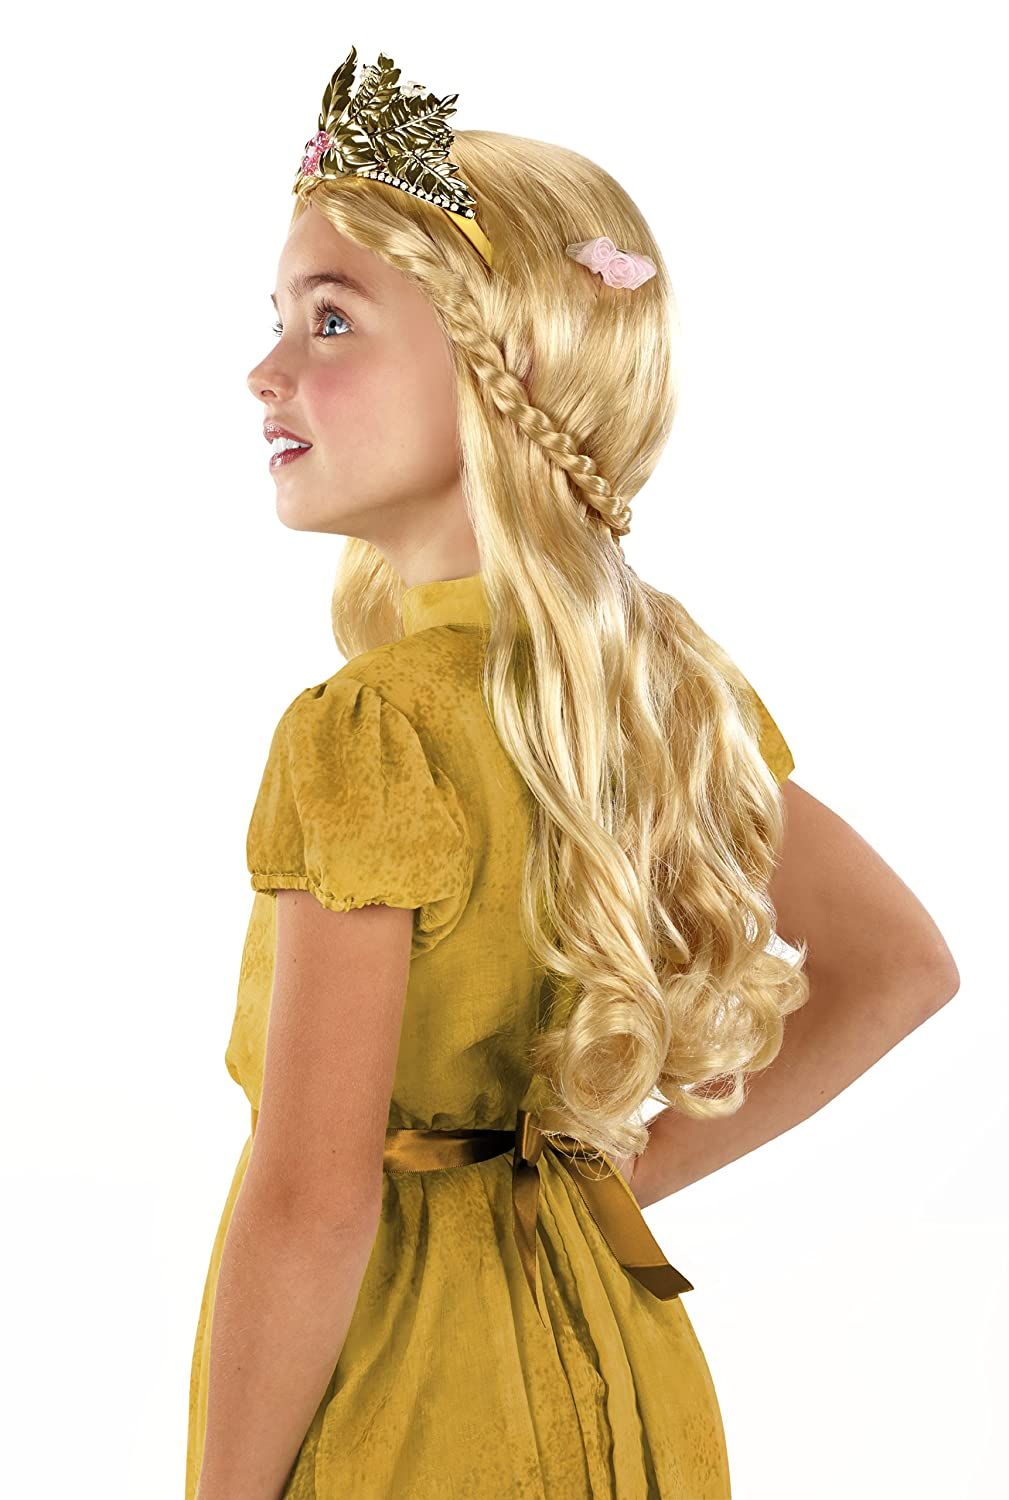 Princess aurora tiara costume